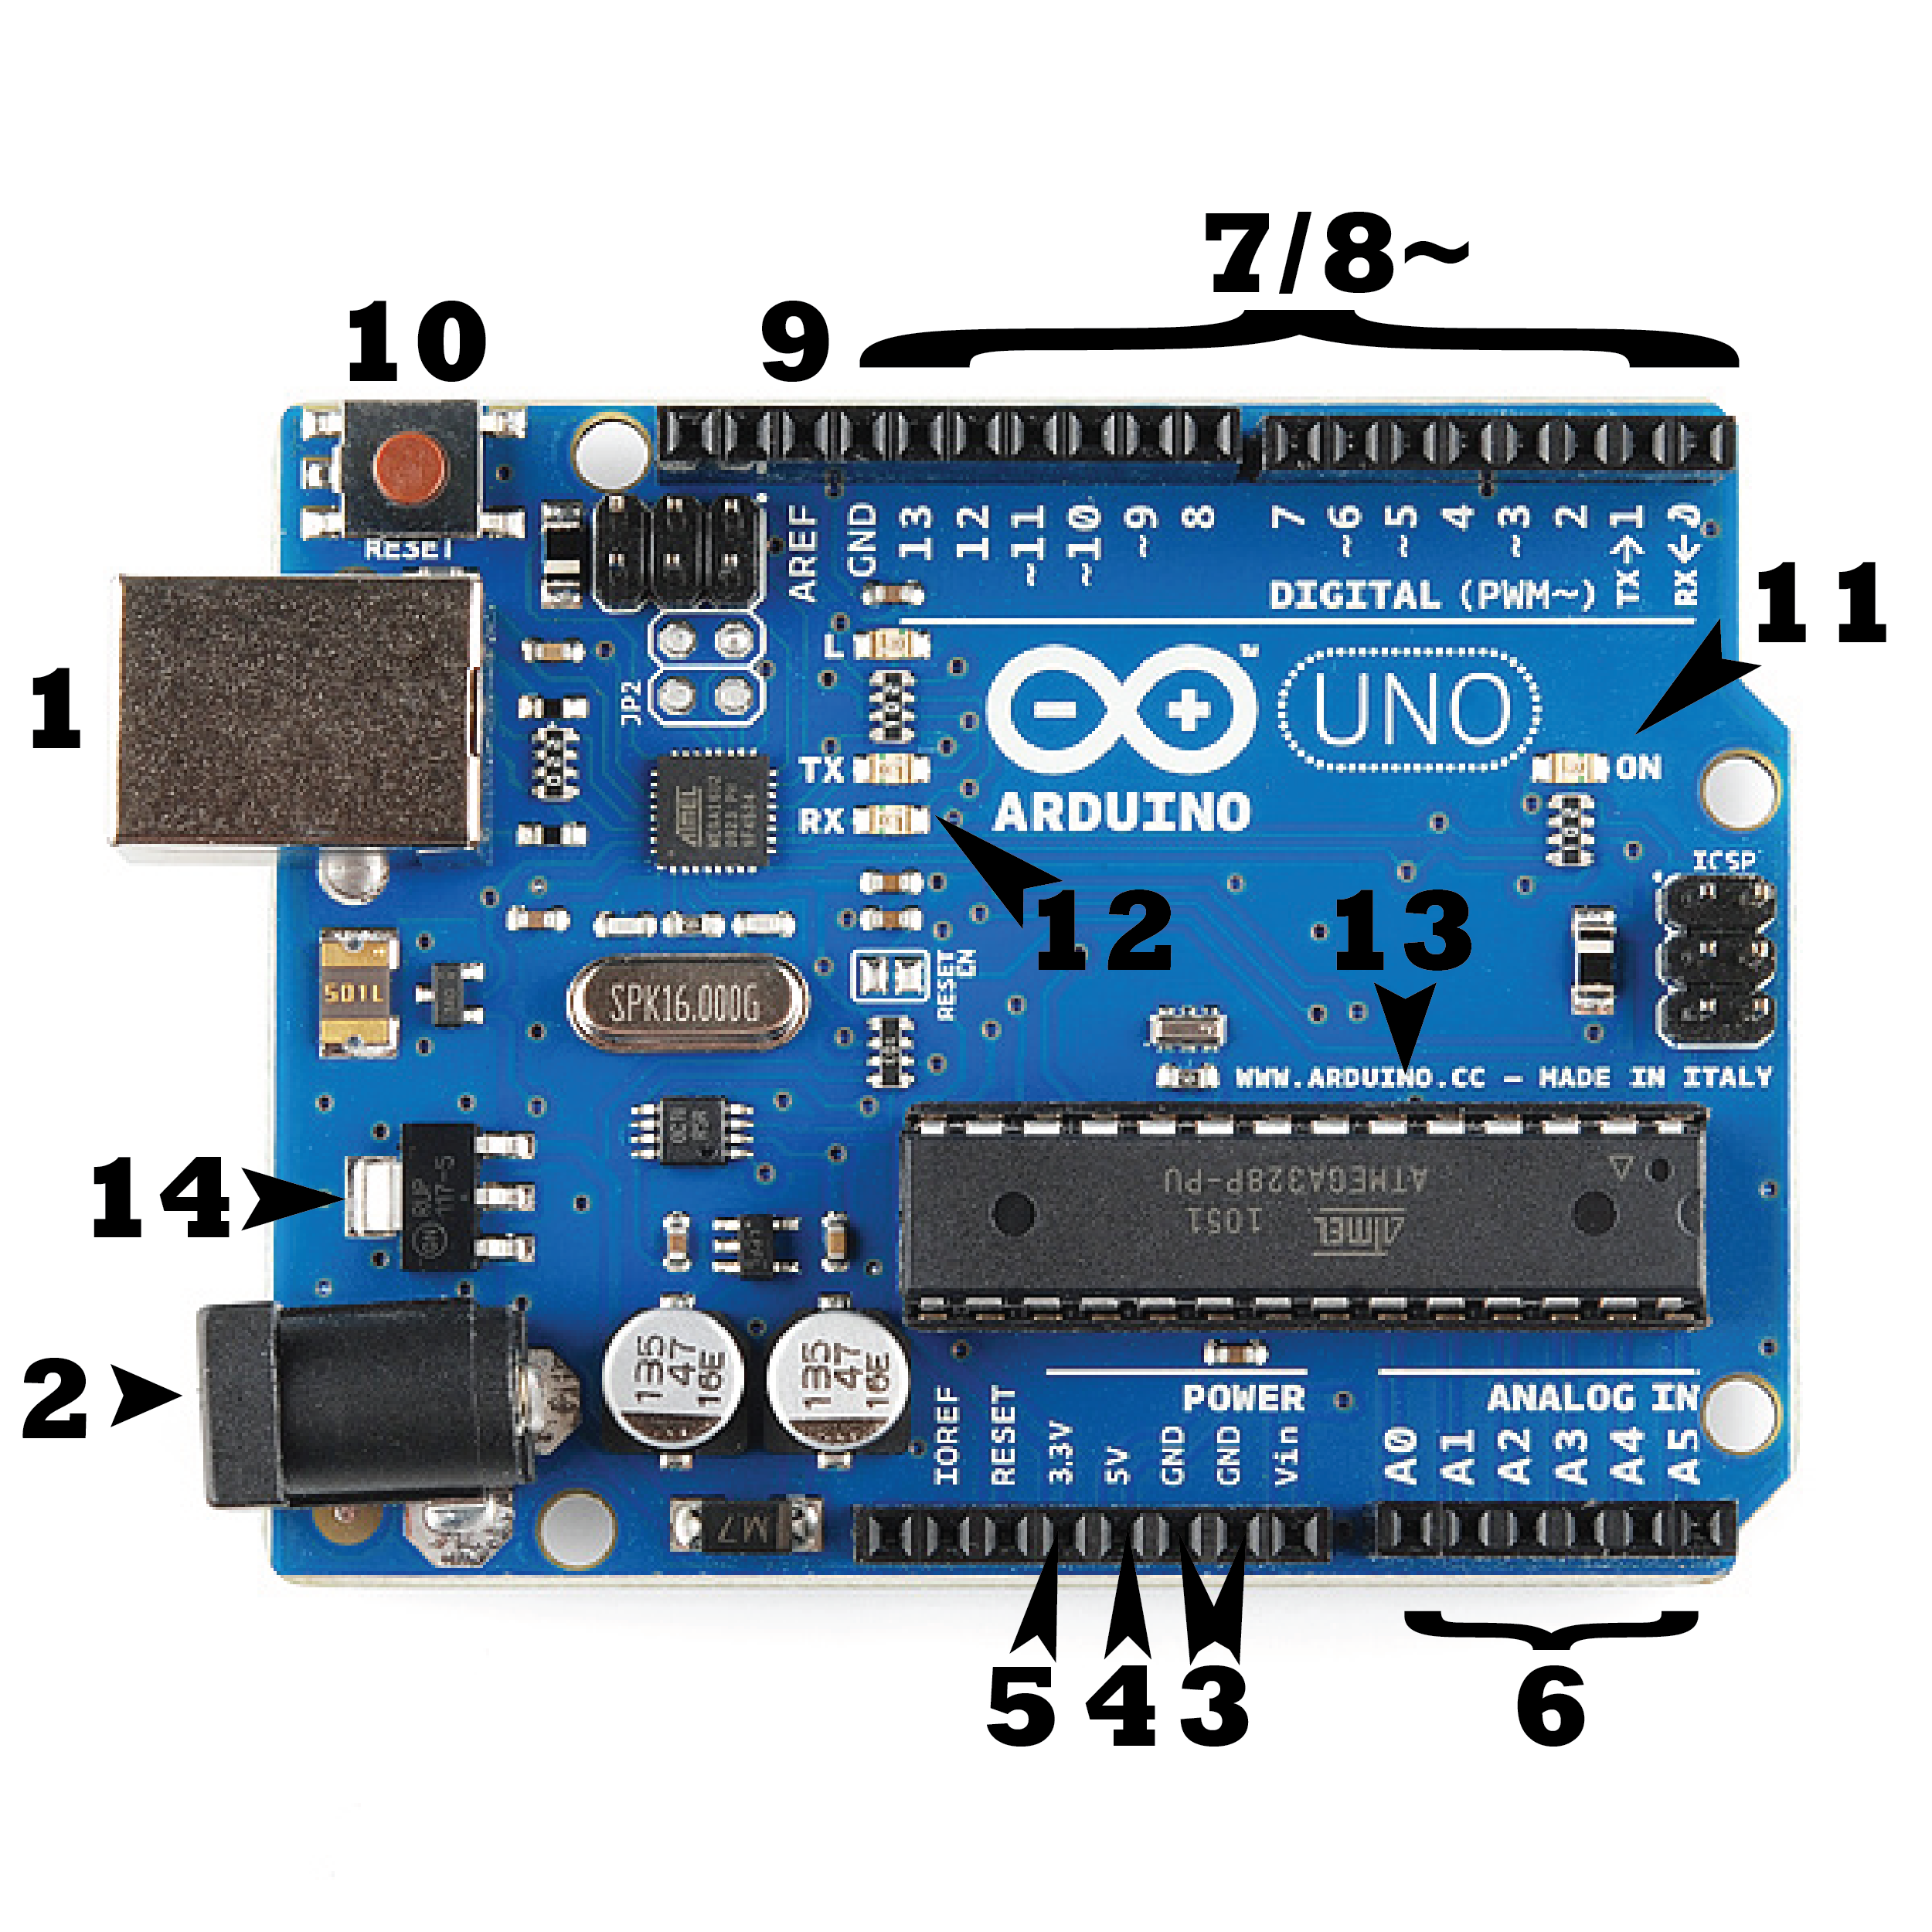 programming - New to Arduino: Should I learn C, C++ or ...